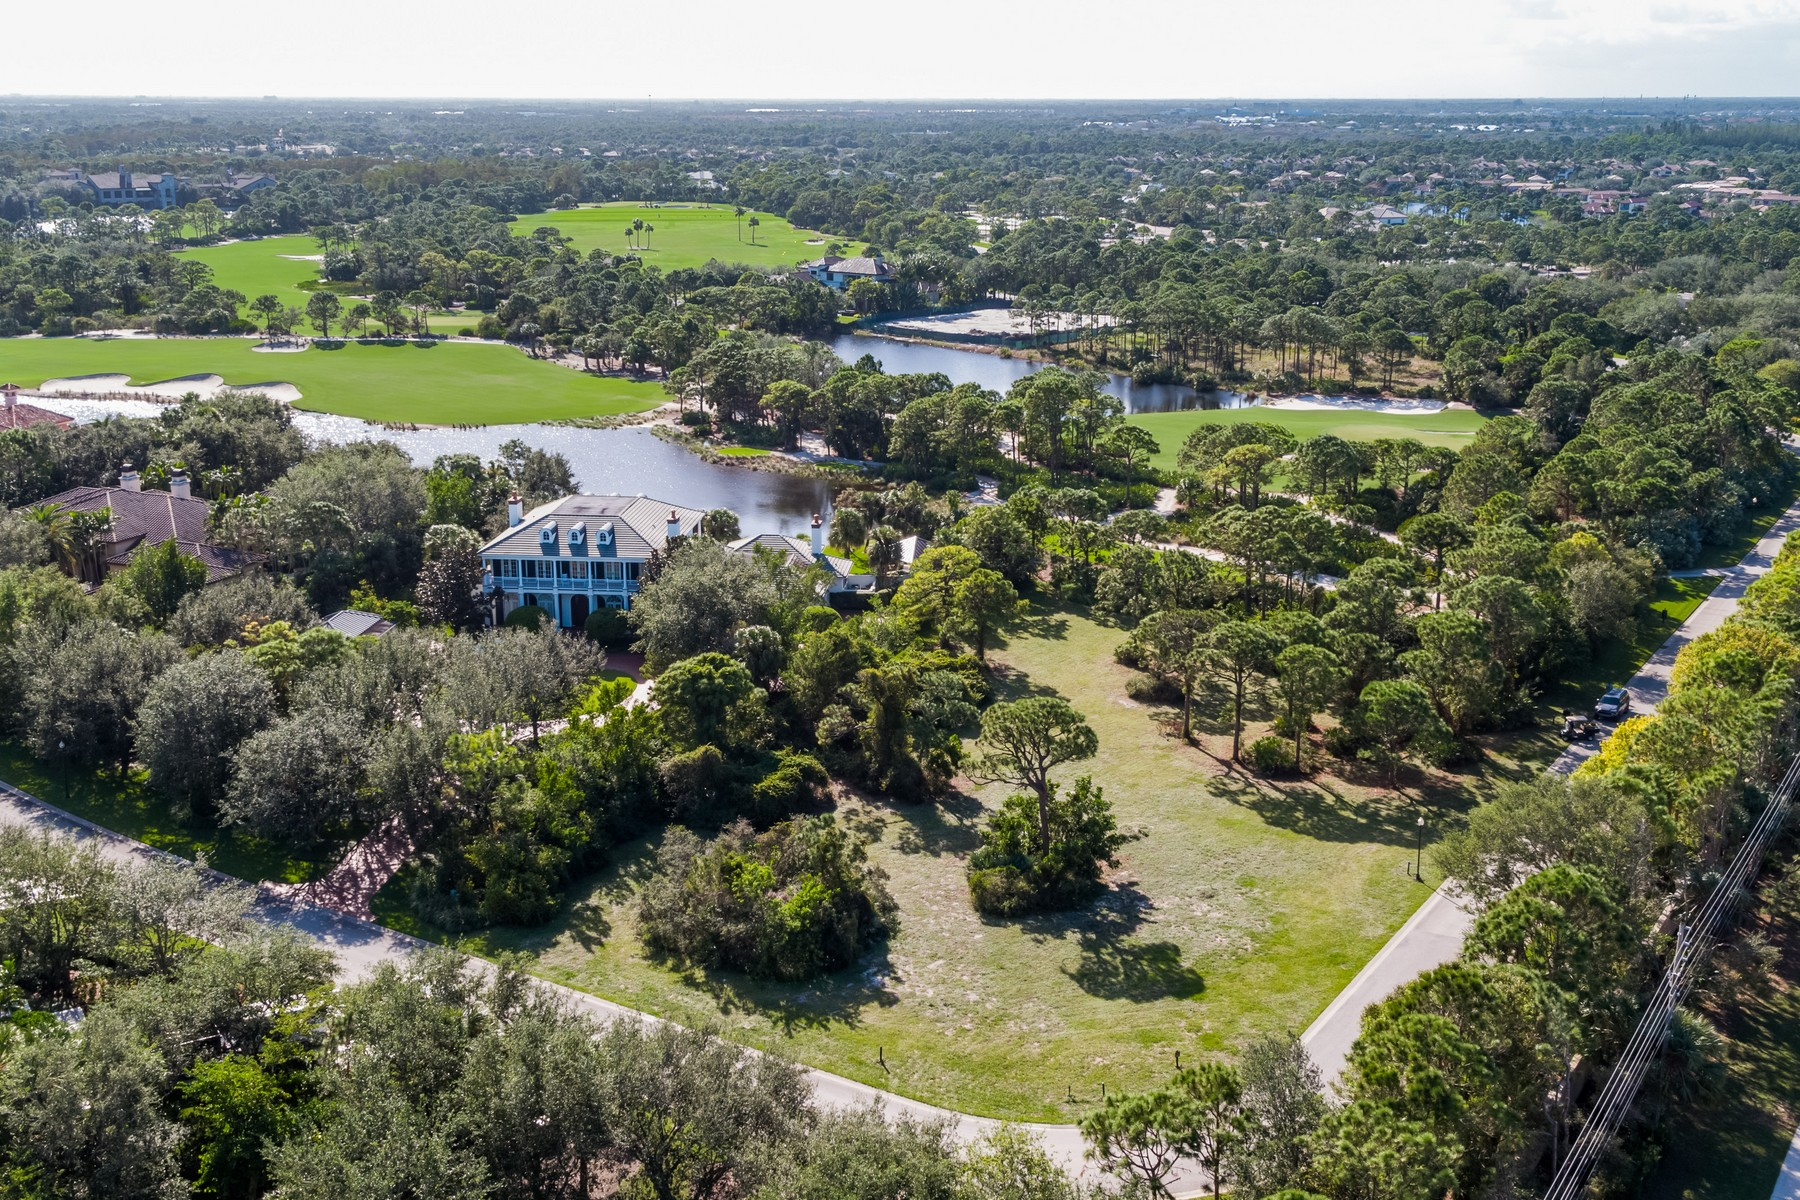 Land for Sale at 210 Bear's Club Drive, Lot 5 at The Bear's Club Jupiter, Florida 33477 United States